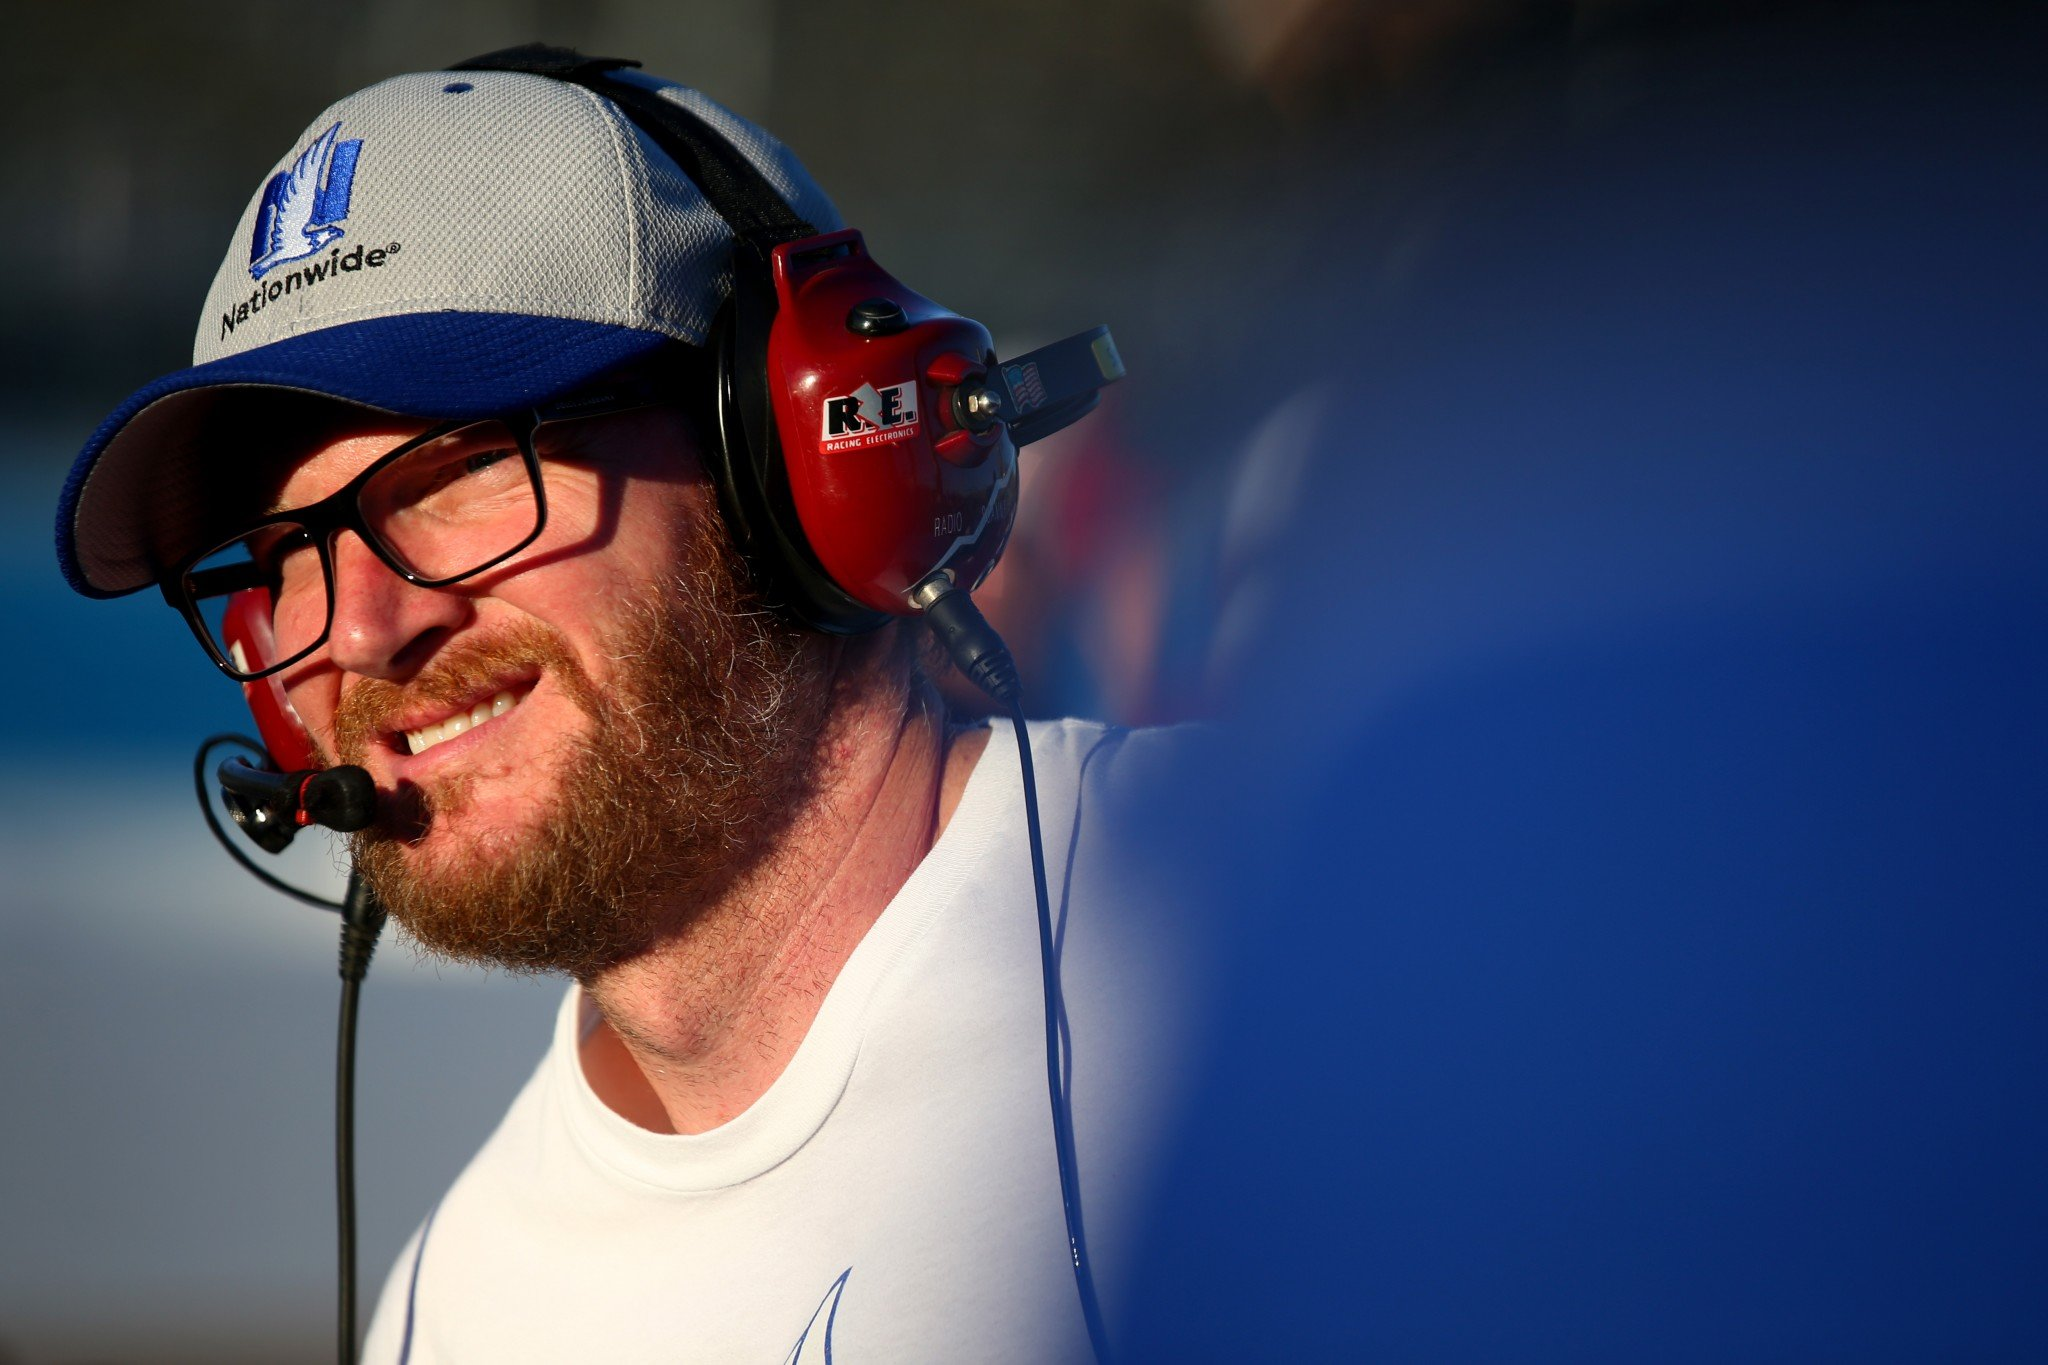 Dale Earnhardt Jr. didn't compete in the final 18 races of the 2016 season. (Getty)